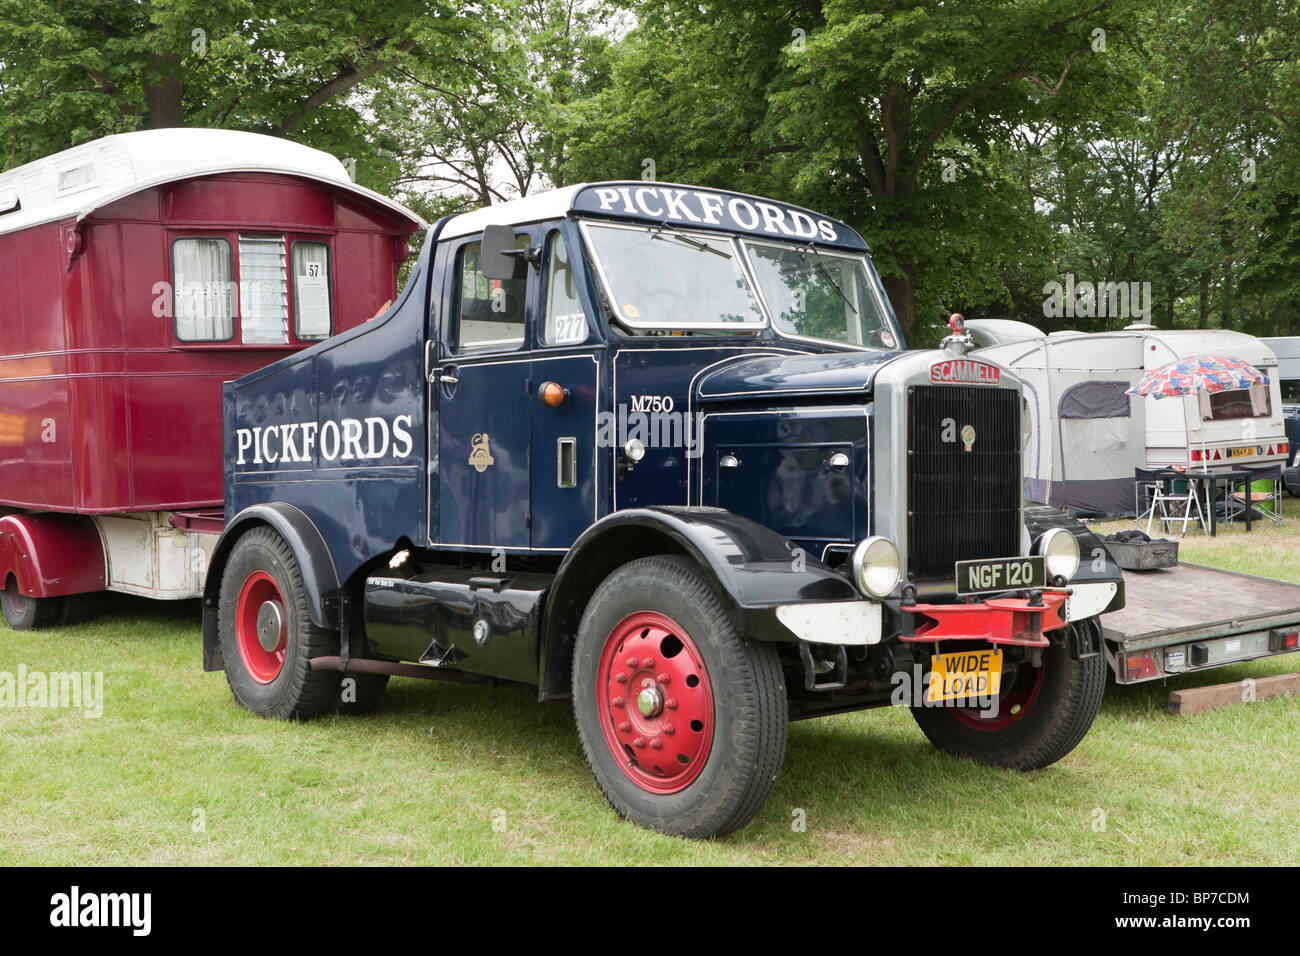 1952 Scammell type 20 ballast box tractor with Pickfords naming - Stock Image